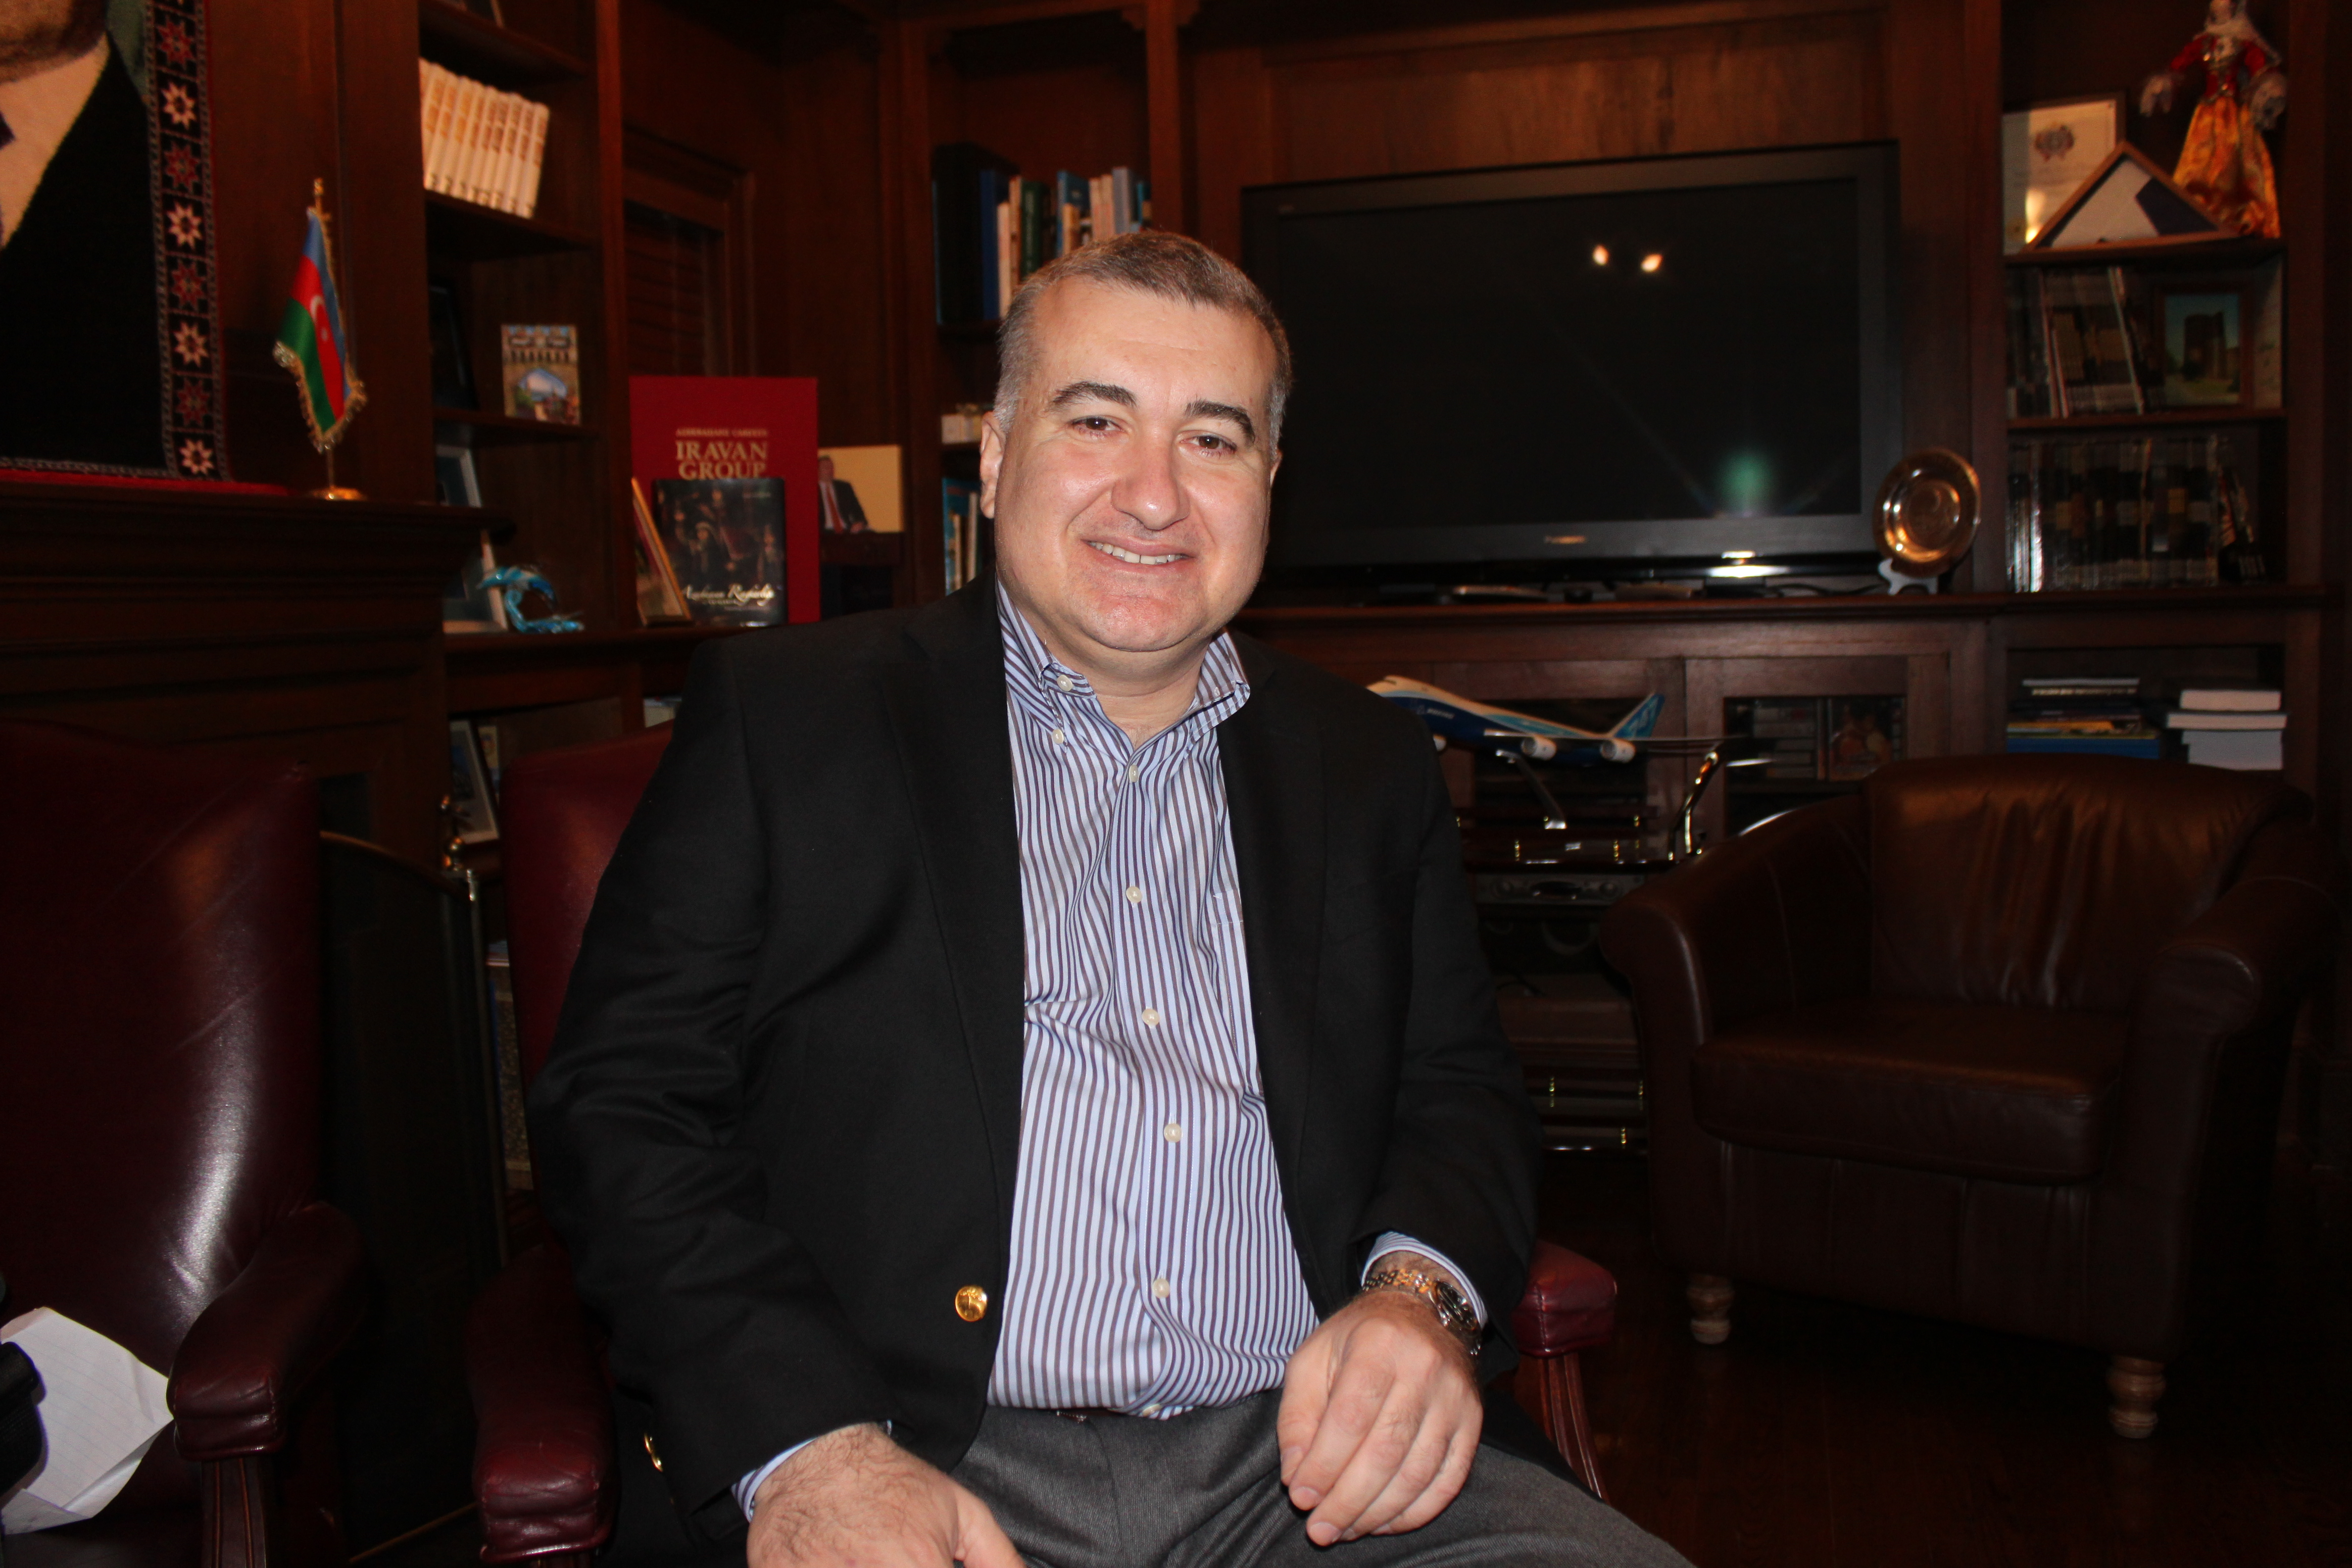 Elin Suleymanov, the Azerbaijani ambassador to the United States, believes that there is no military solution to confront Iran over its nuclear program. (Photo: Josh Siegel/The Daily Signal)